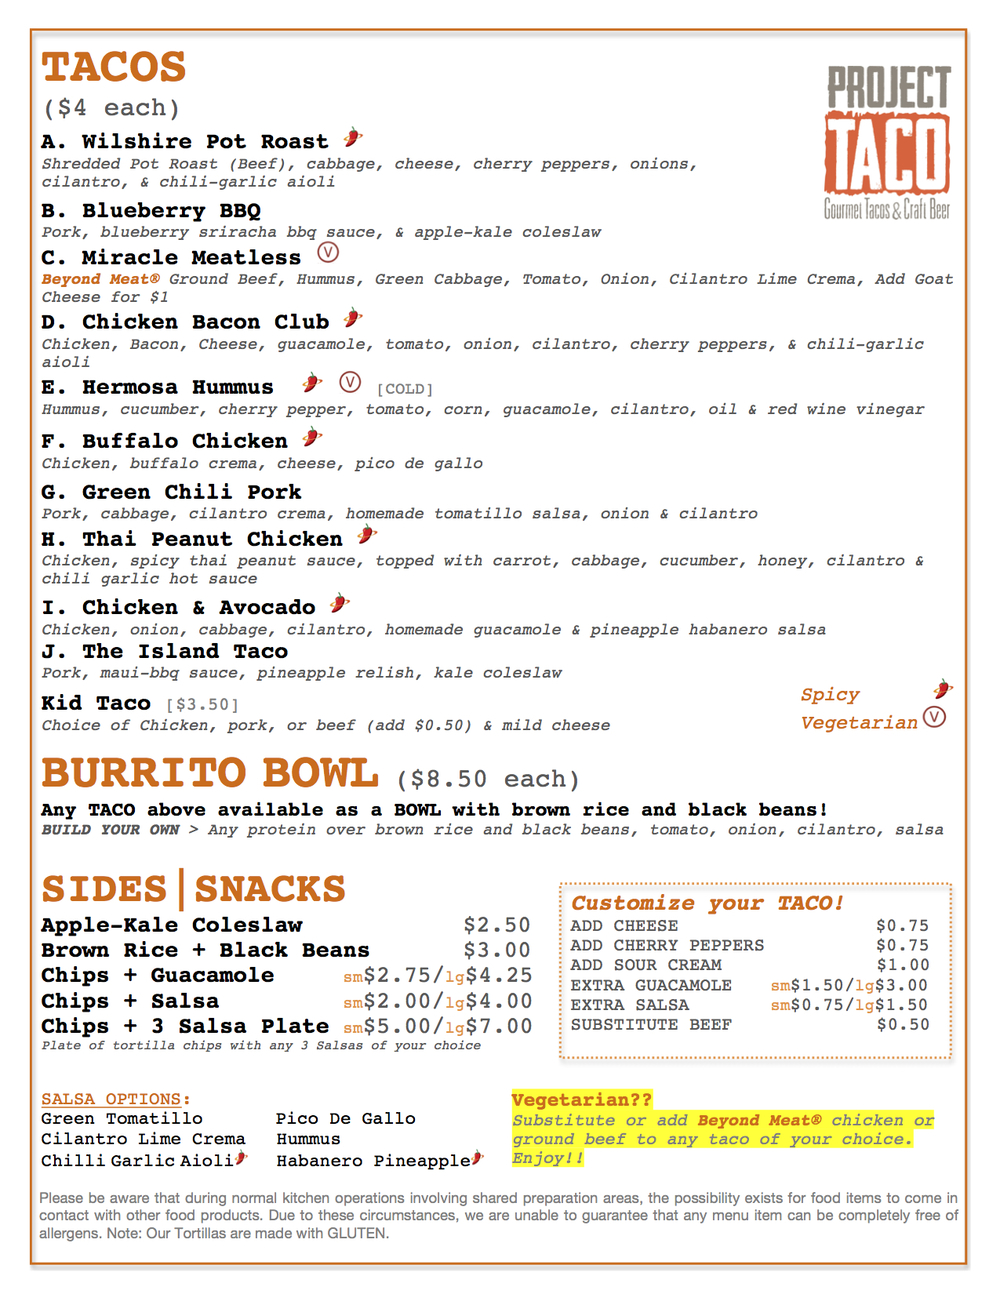 Project Taco Menu Dec 2013 (Window) copy.jpg